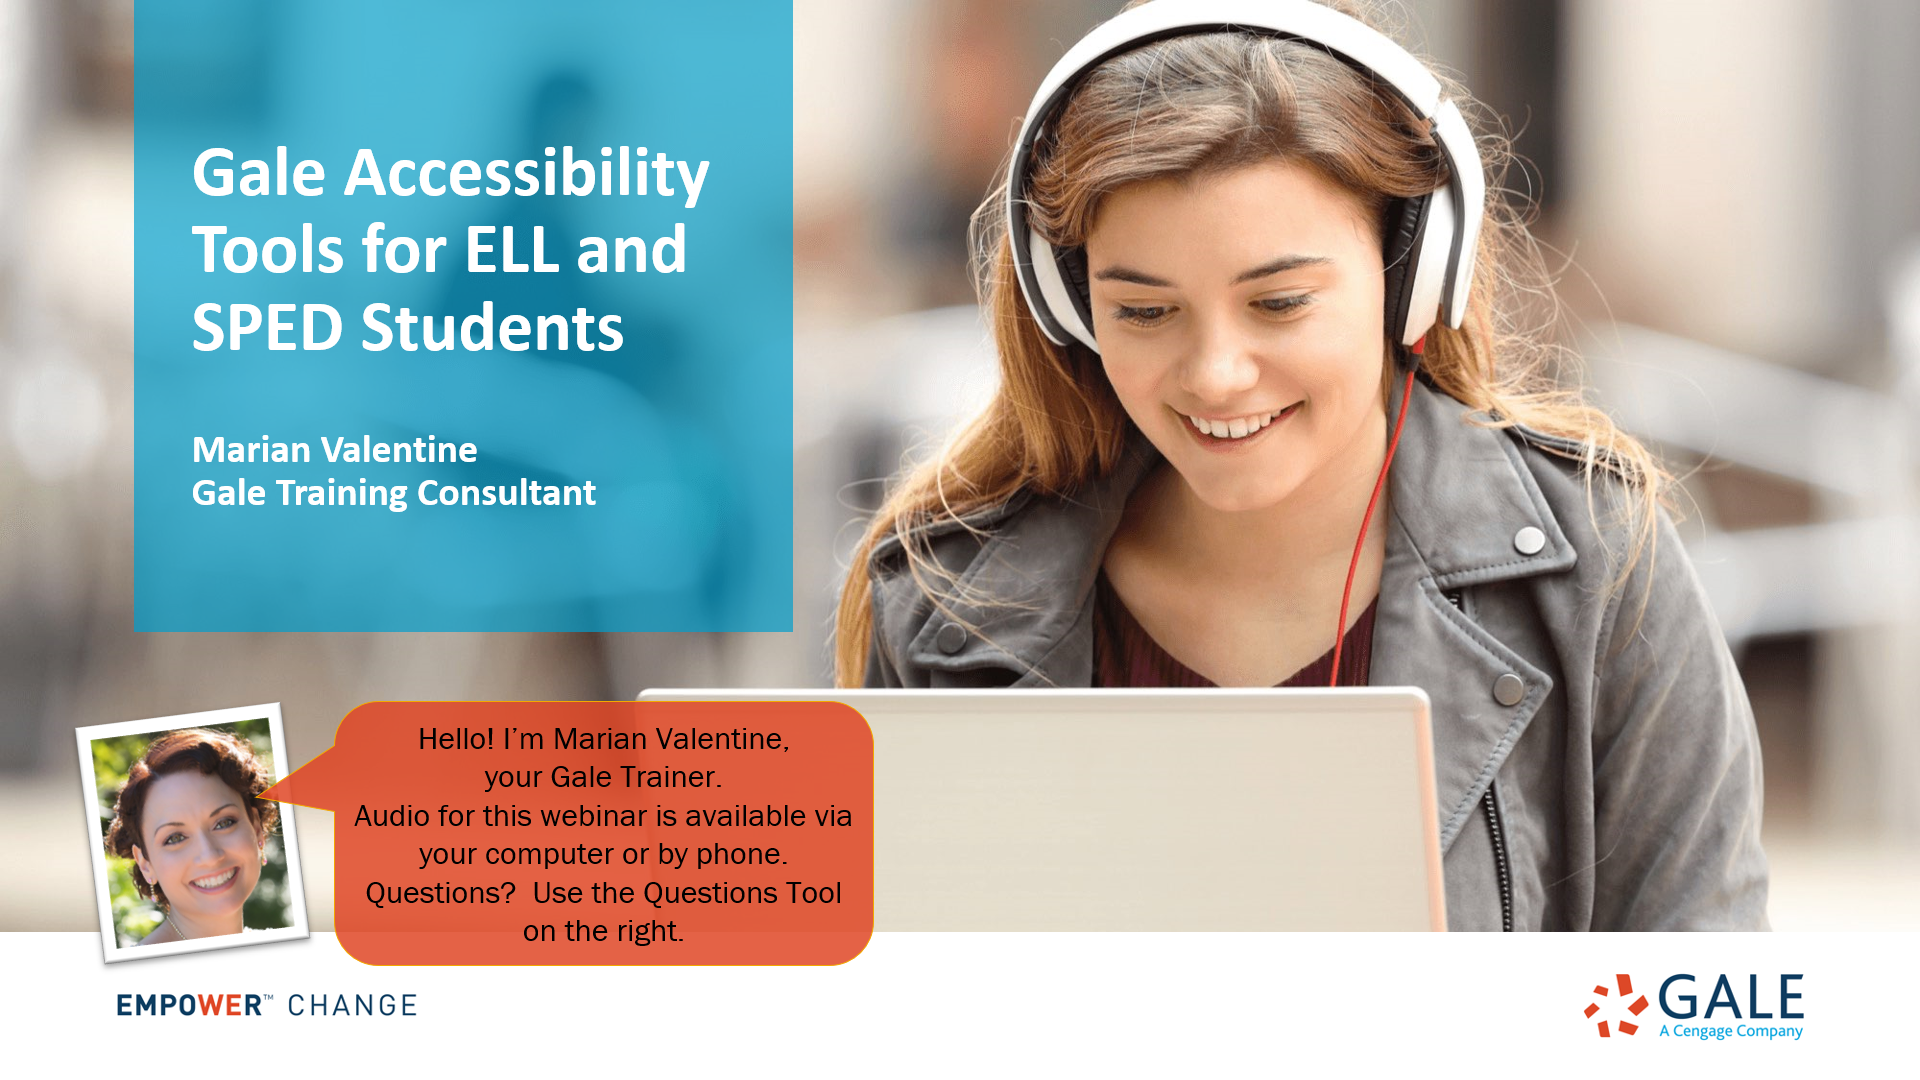 For TexQuest: Gale Accommodations for ELL and SPED Thumbnail